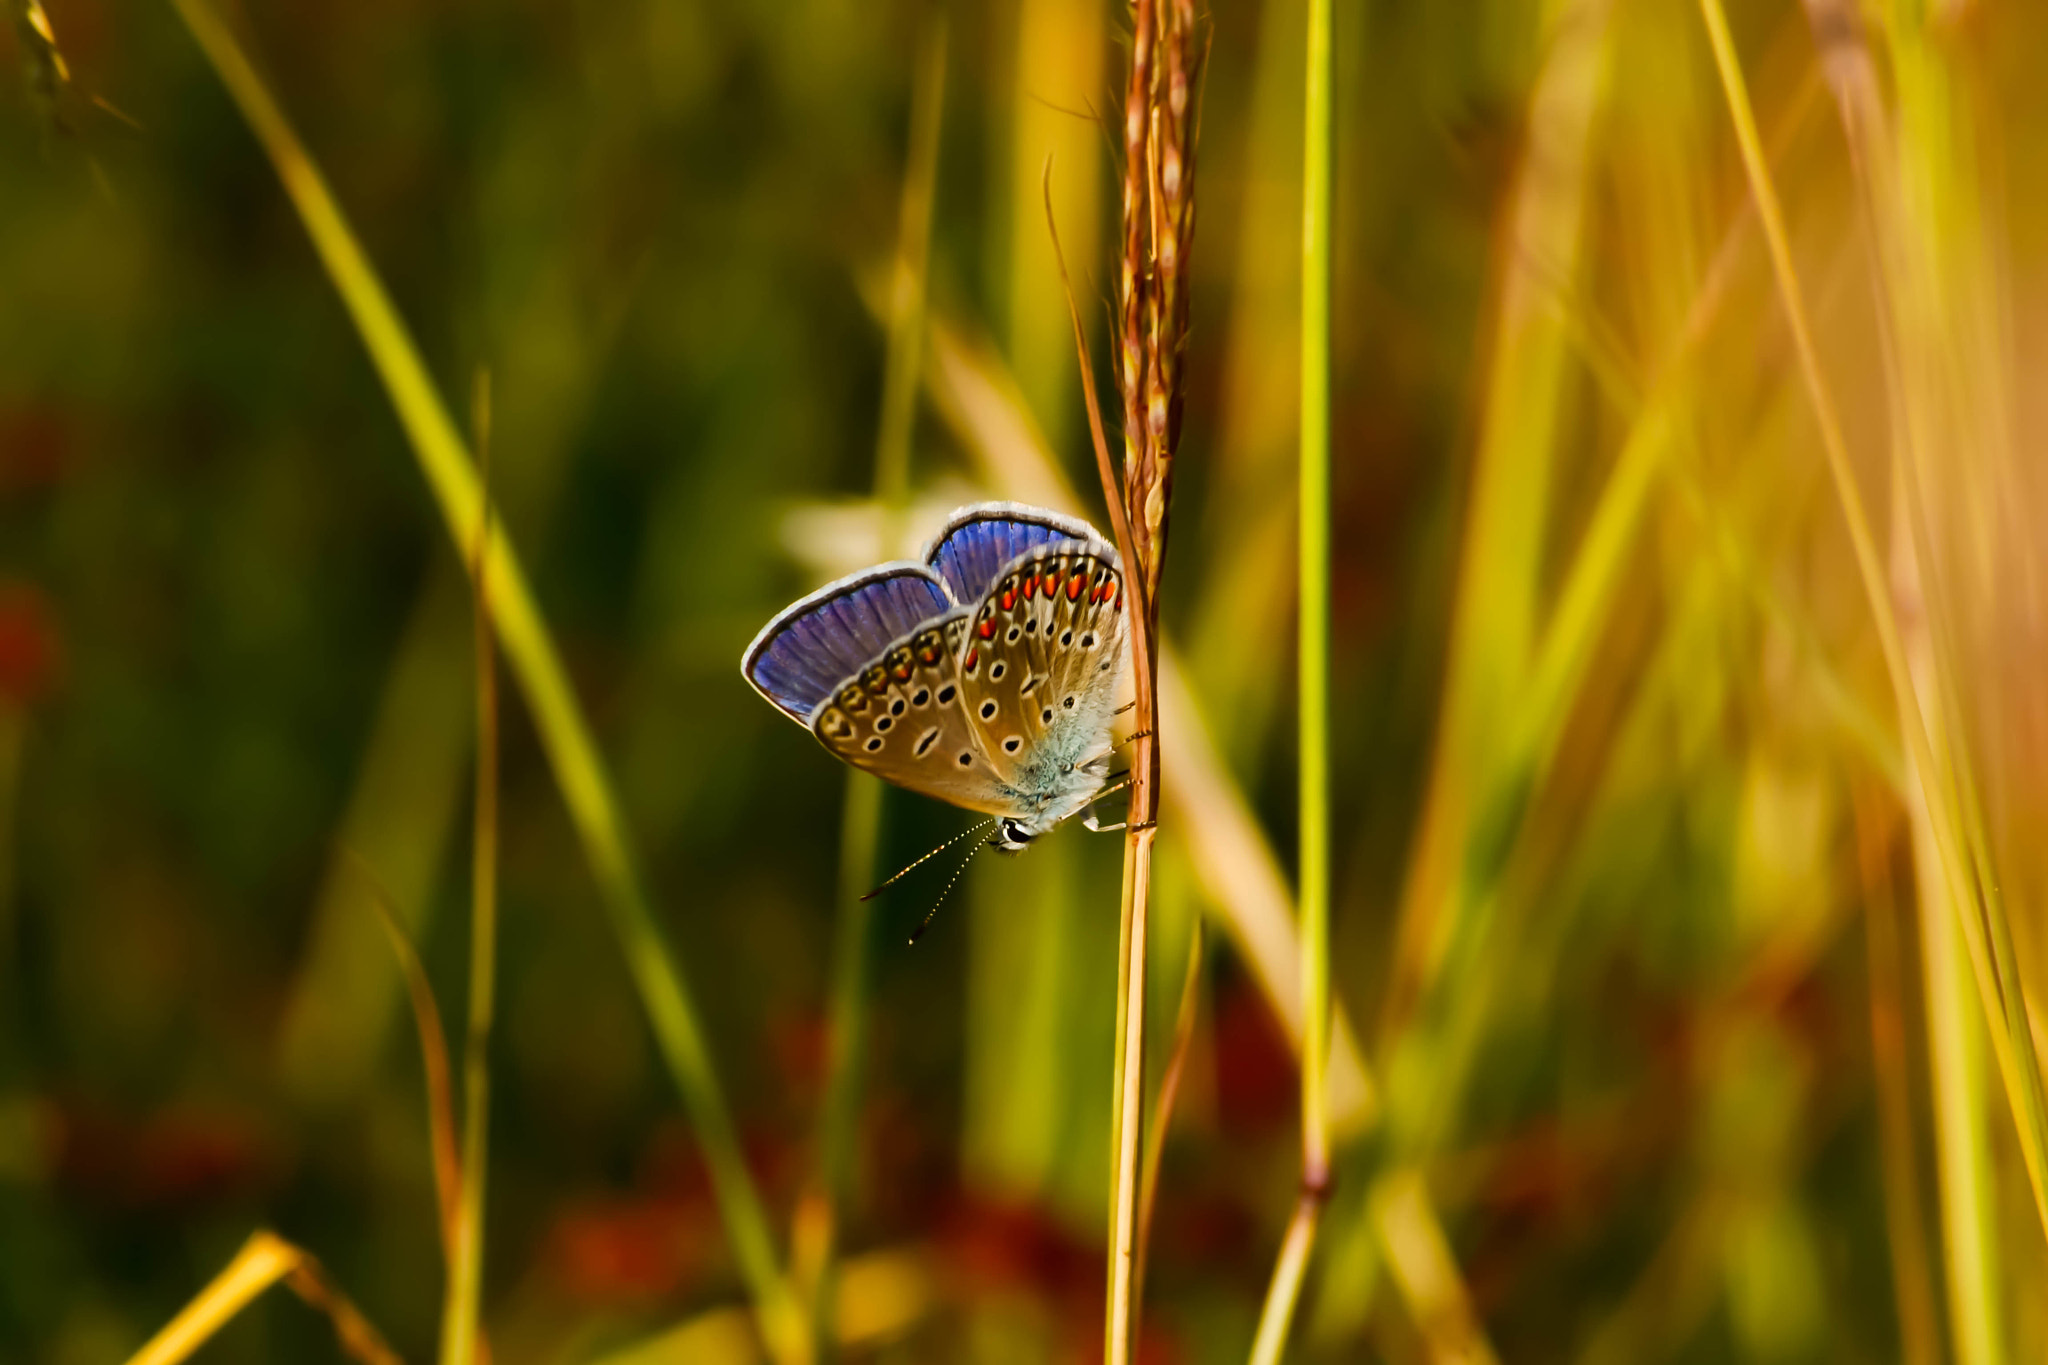 Photograph butterfly by Scurtu Gelu on 500px